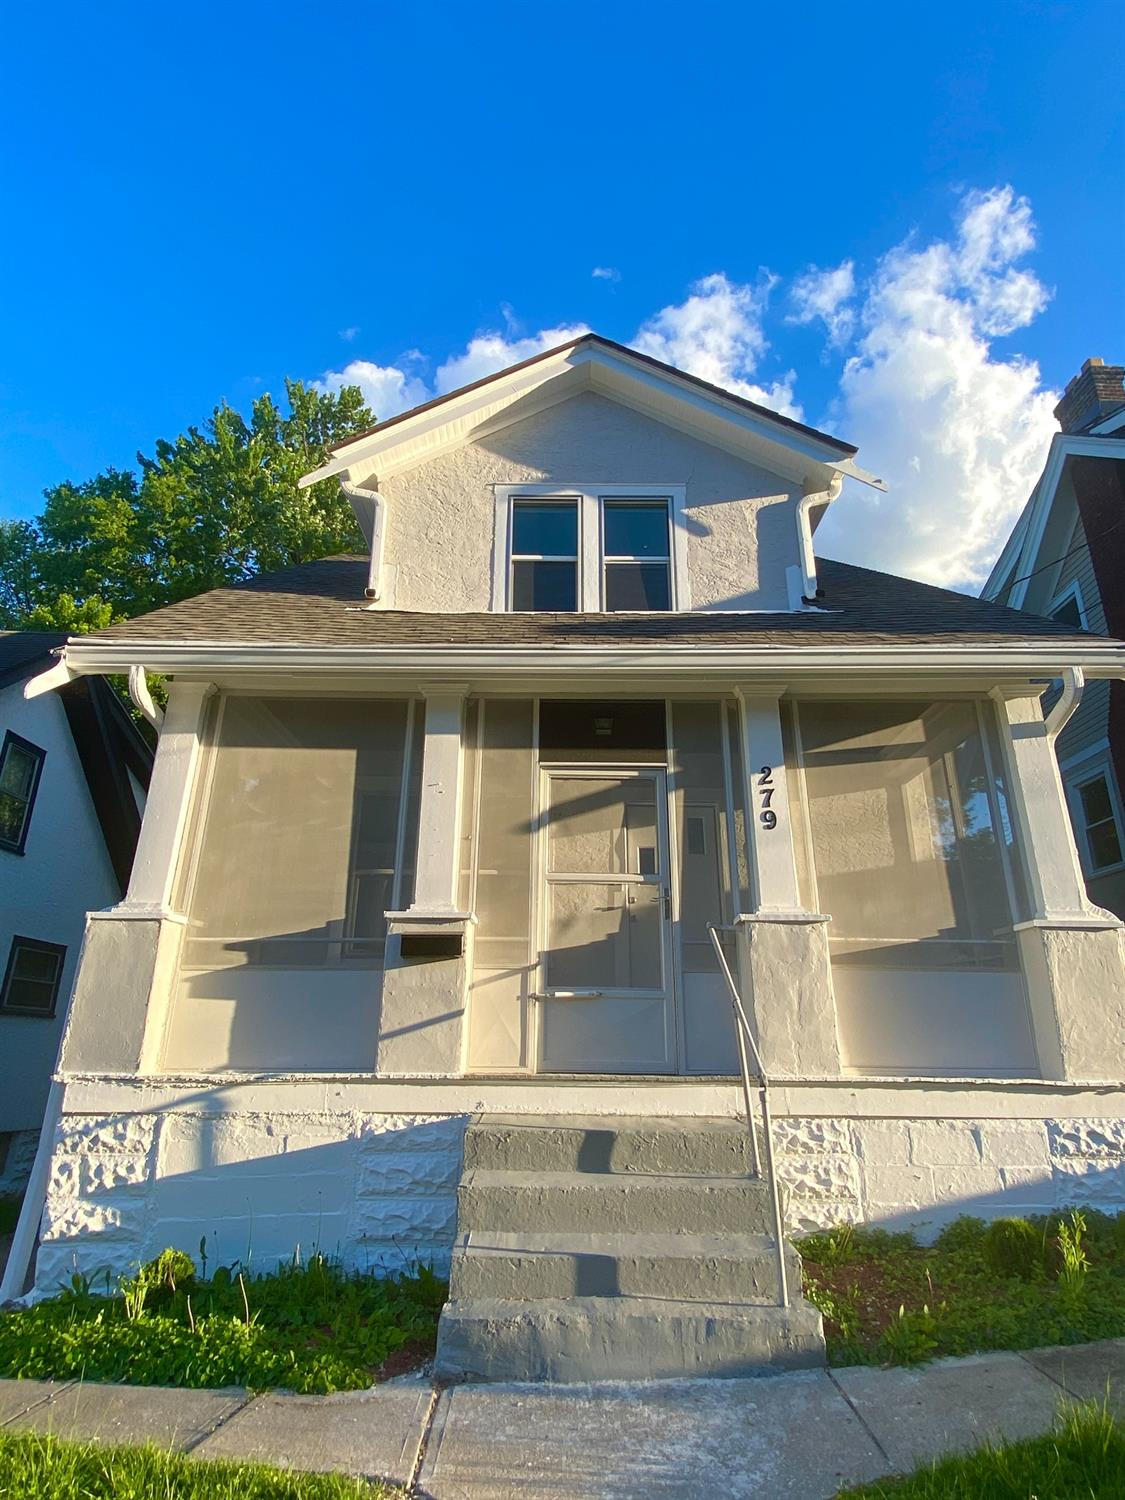 Location! Location! This remodeled home is only .4 mile to Christ Hospital, 1.5 miles to UC and only 1 mile to OTR restaurants and entertainment. Conveniently located only a mile from Eden Park and only 2 miles from the riverfront stadiums, this location is fantastic! You'll appreciate the off street parking in addition to the updates inside and out. The charming features including original paneled doors have been carefully preserved while new windows welcome an abundance of light into this freshly updated space. With the fresh paint, new flooring, updated kitchen and bath and all new mechanicals, there's lots to appreciate. Hurry! It will go fast!